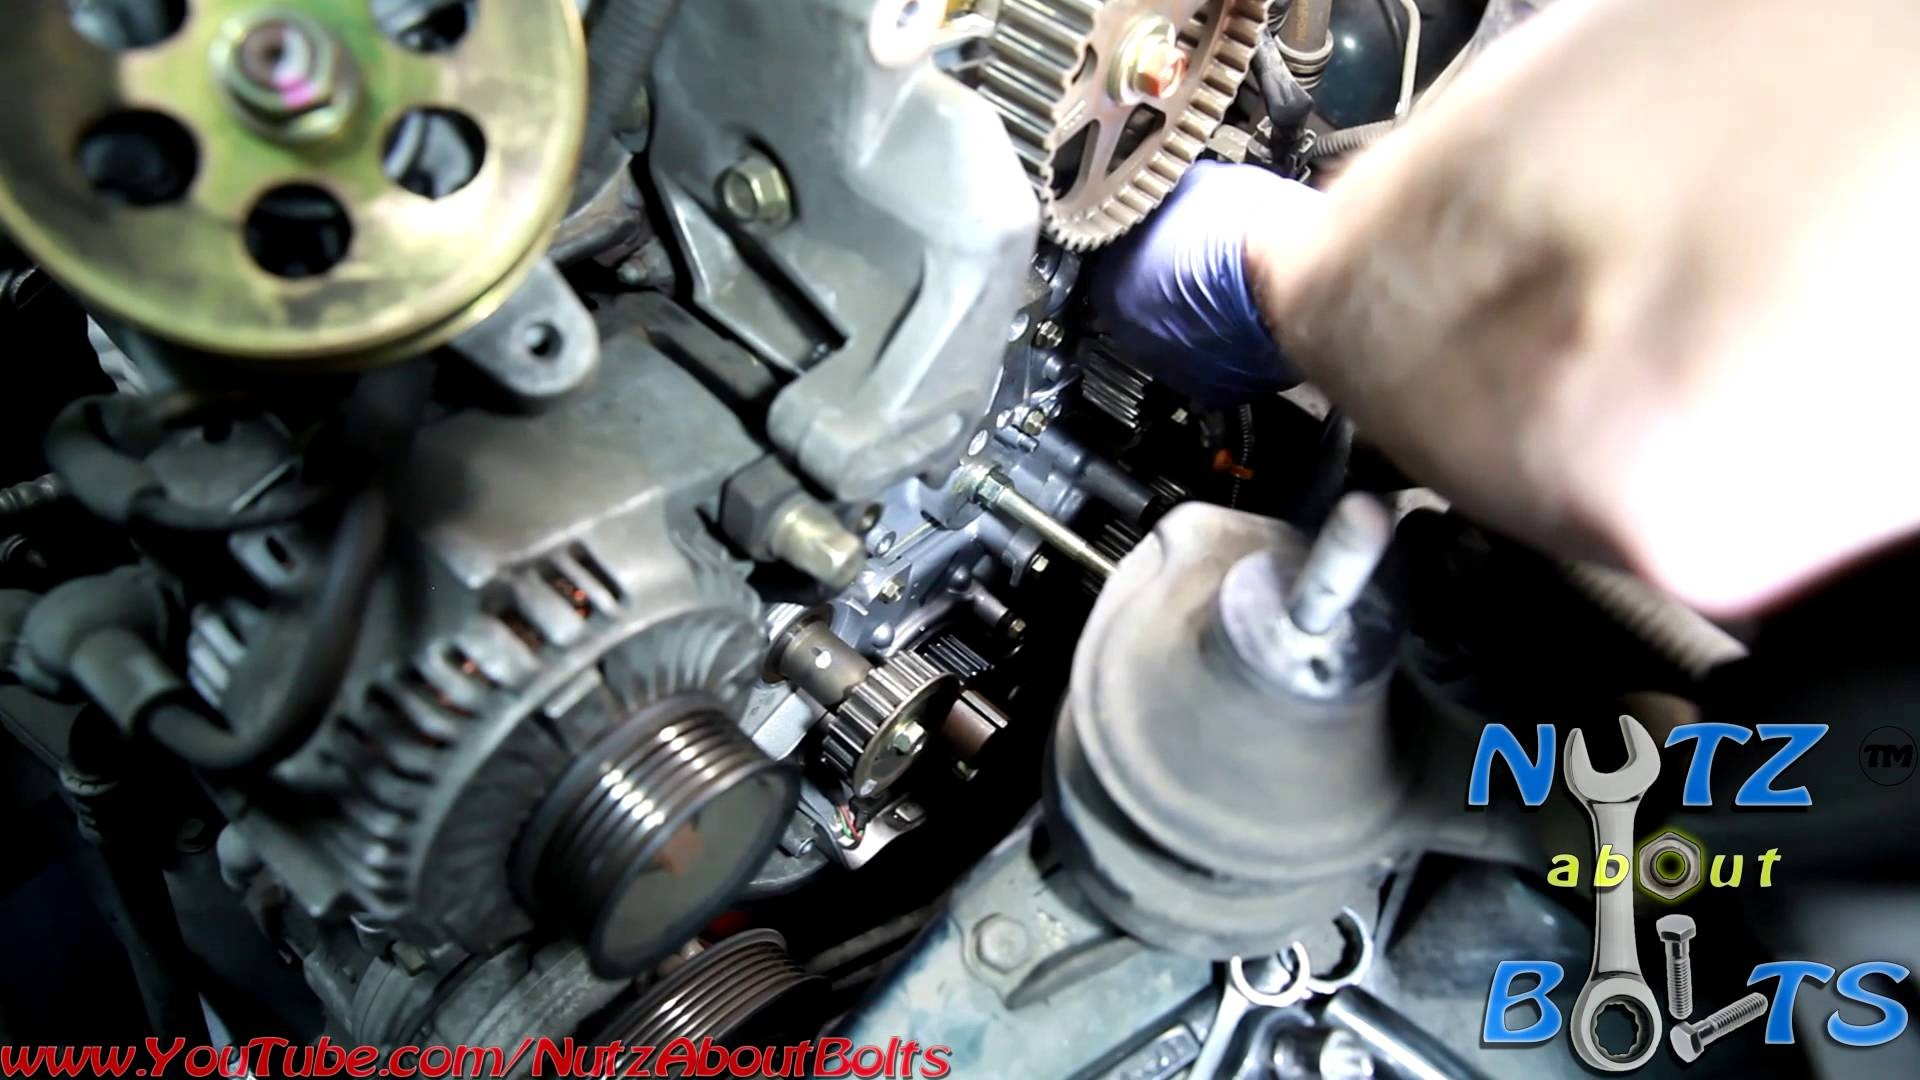 1992 Honda Accord Engine Diagram 1jz Series Ecu Wiring Harness 92 1998 2002 Timing Belt Replacement With Water Pump Of